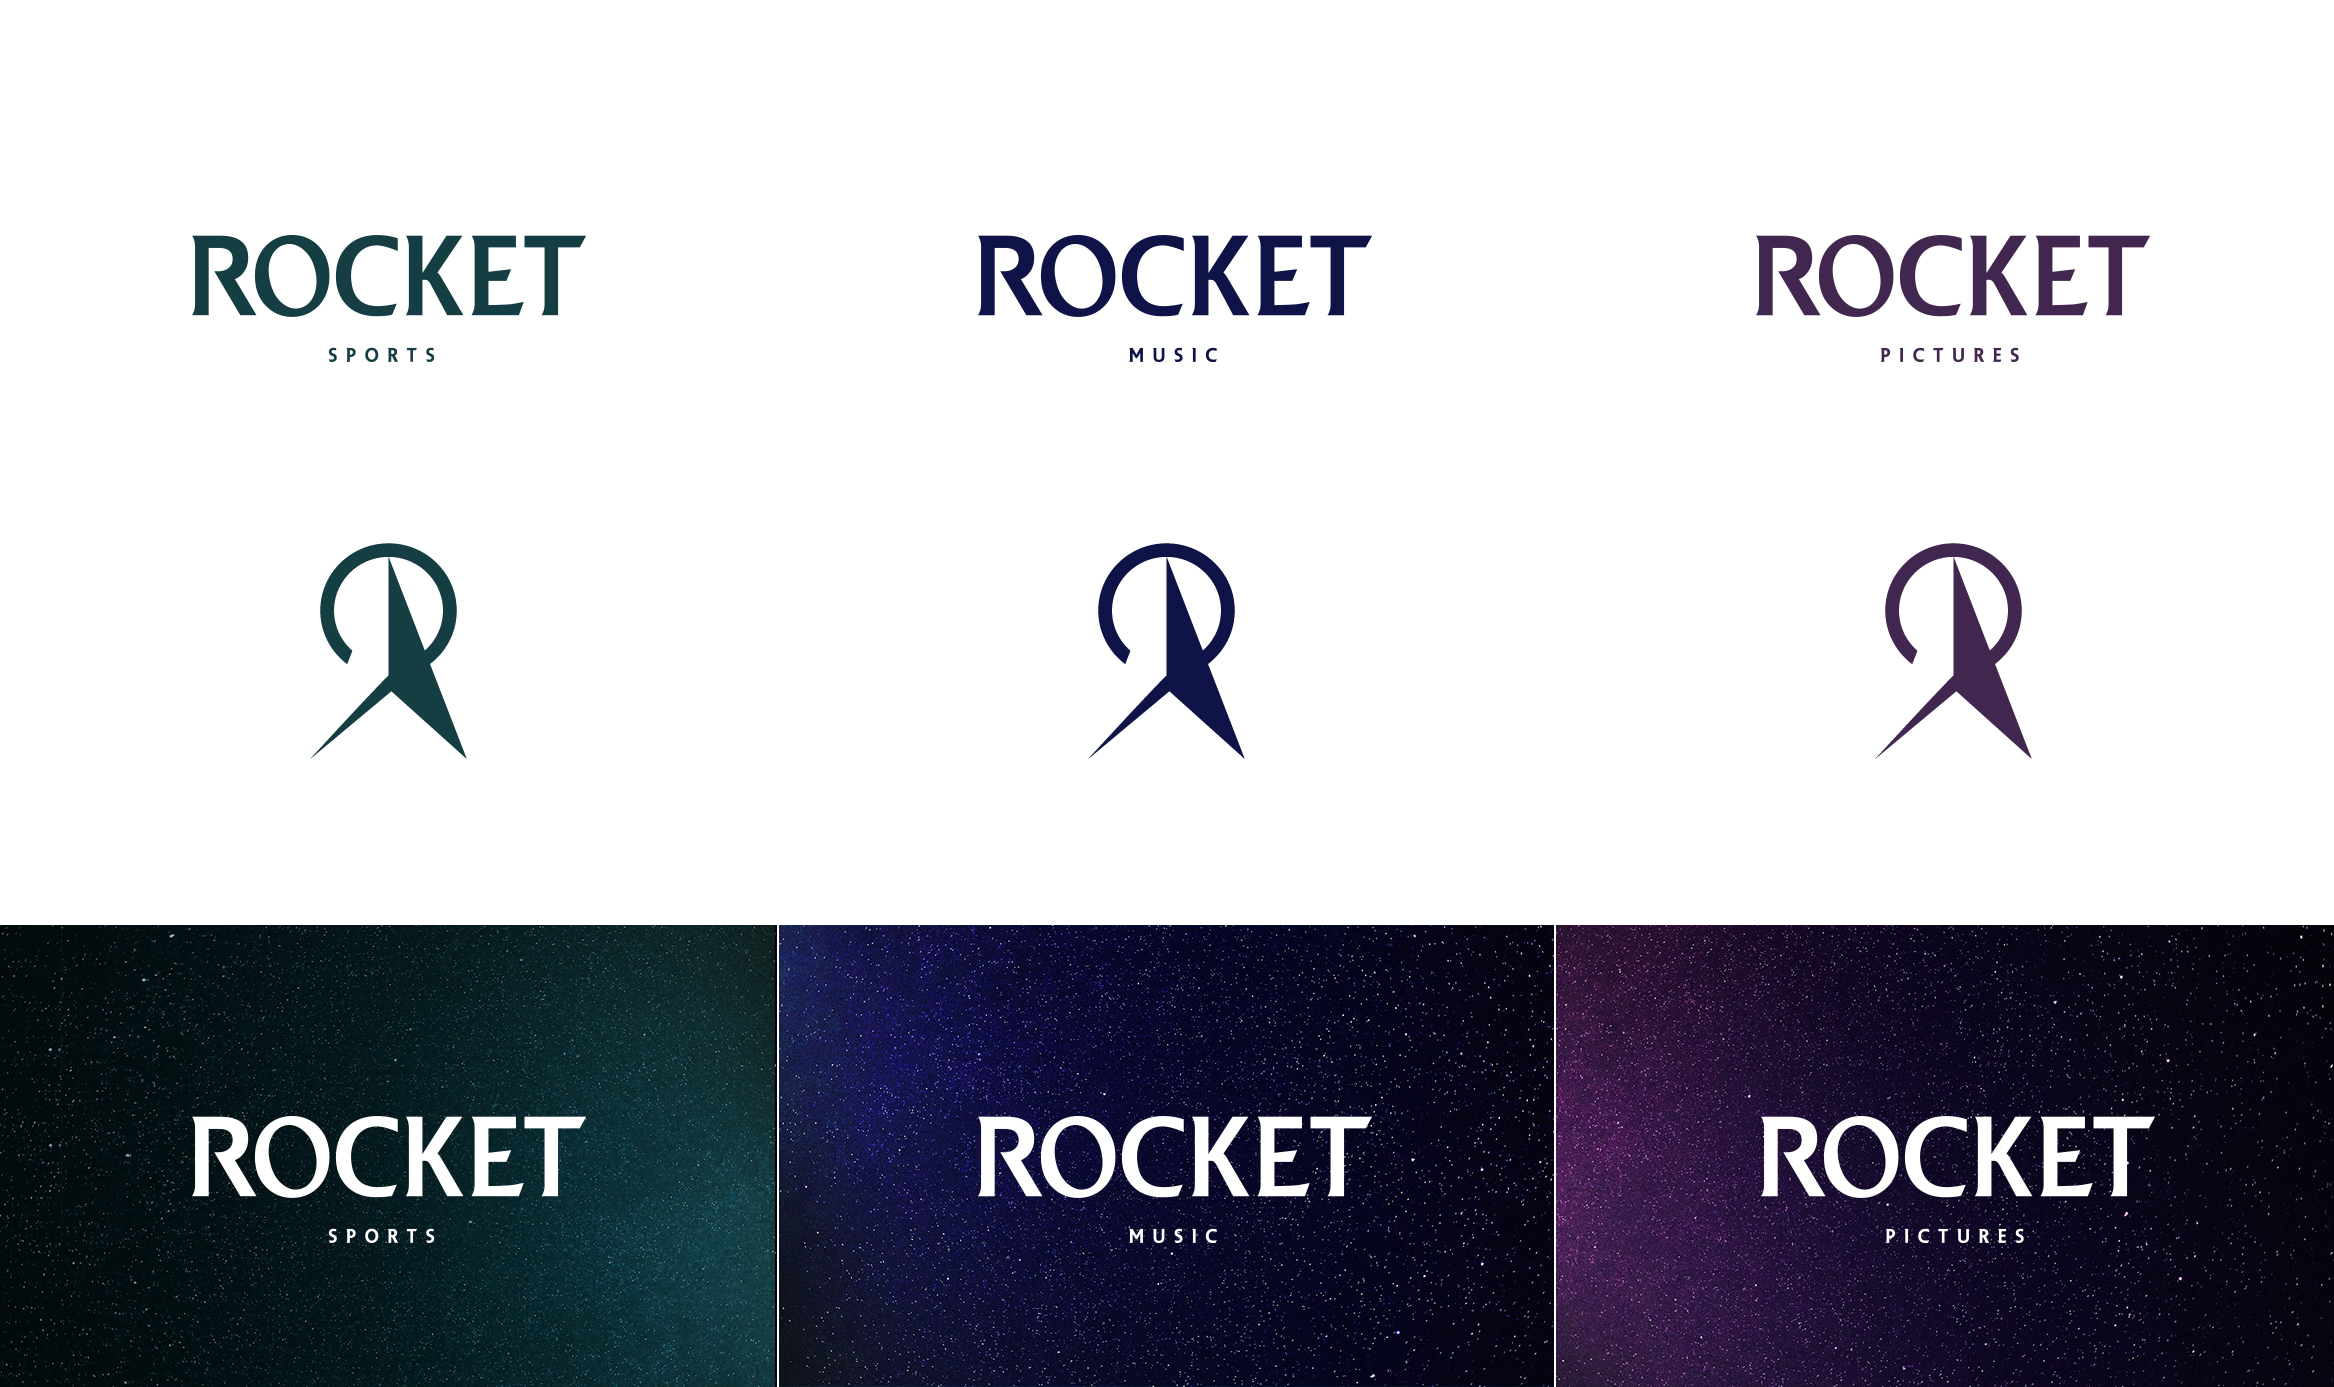 ROCKET_WEBSITE_03.jpg